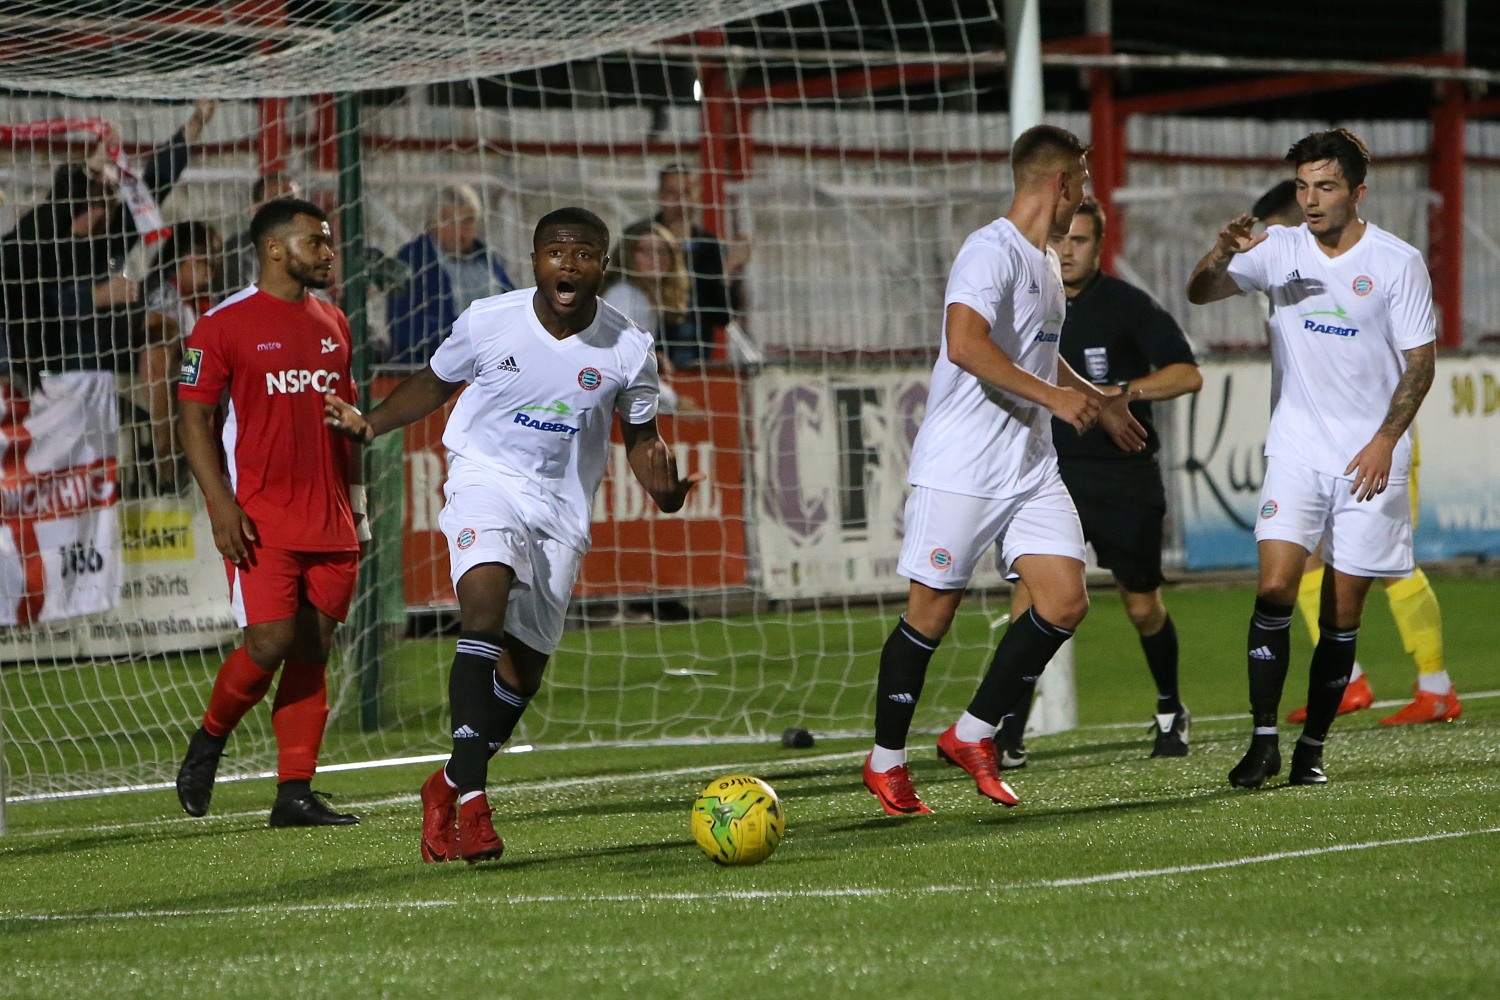 Read the full article - HIGHLIGHTS: Carshalton 1-2 Worthing [A] – League